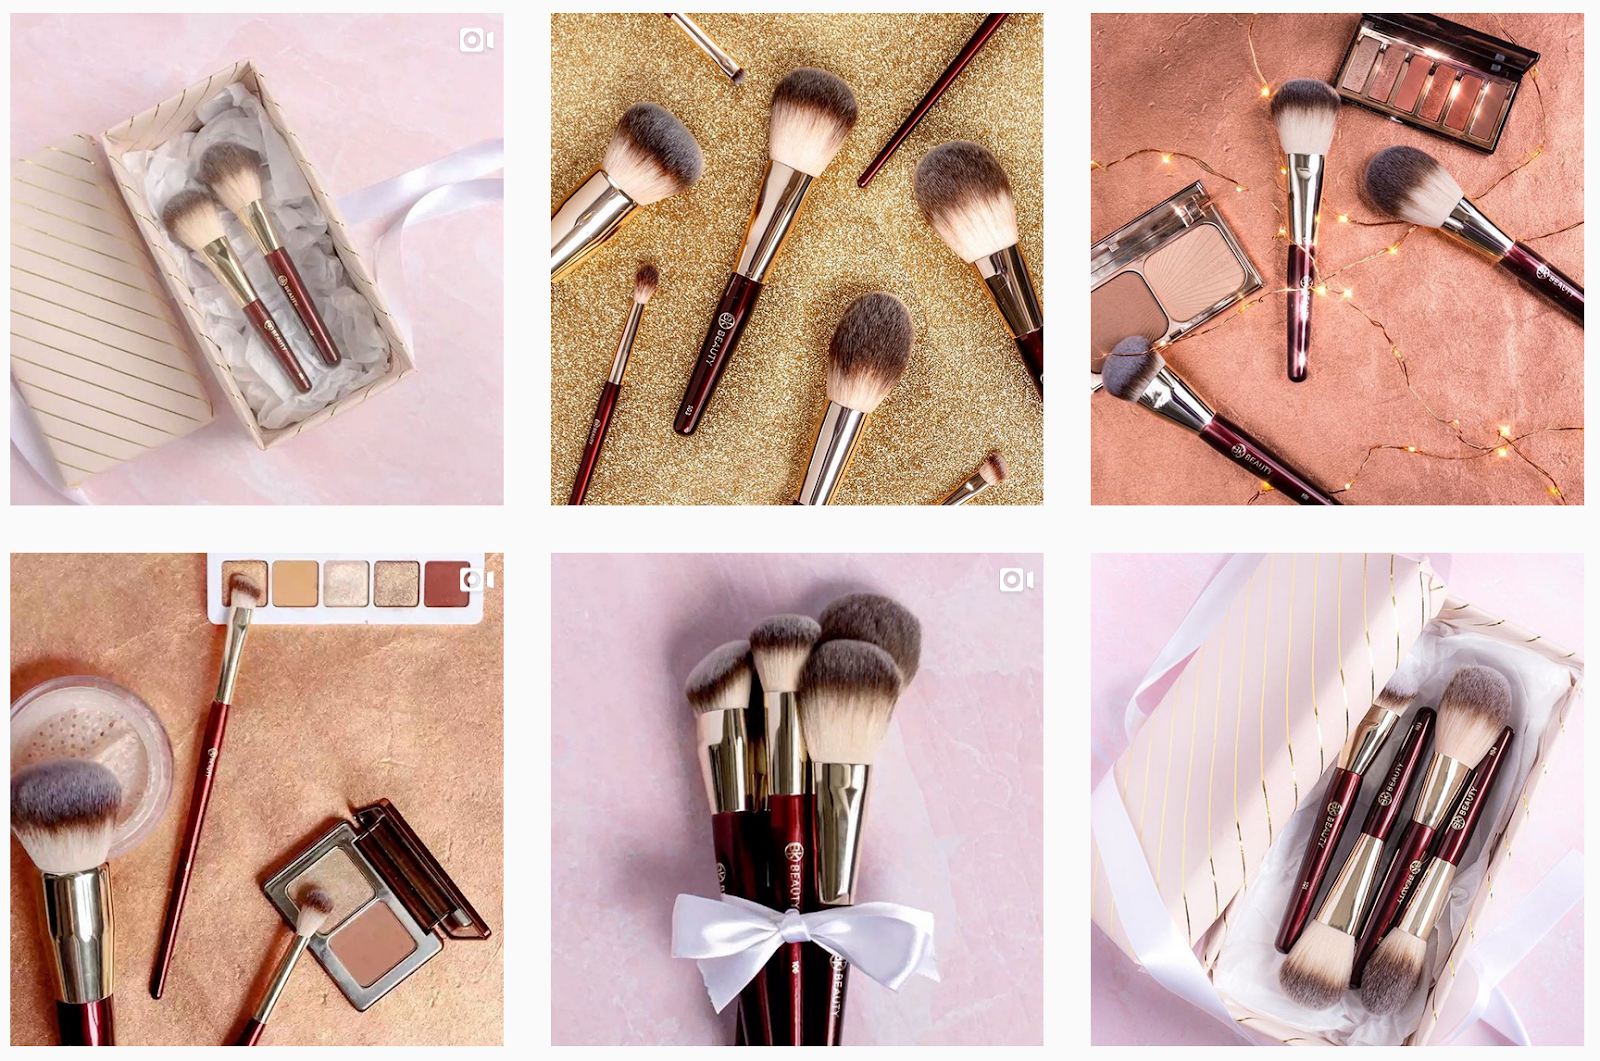 BK Beauty - Product Gallery with Makeup Powders and Brushes